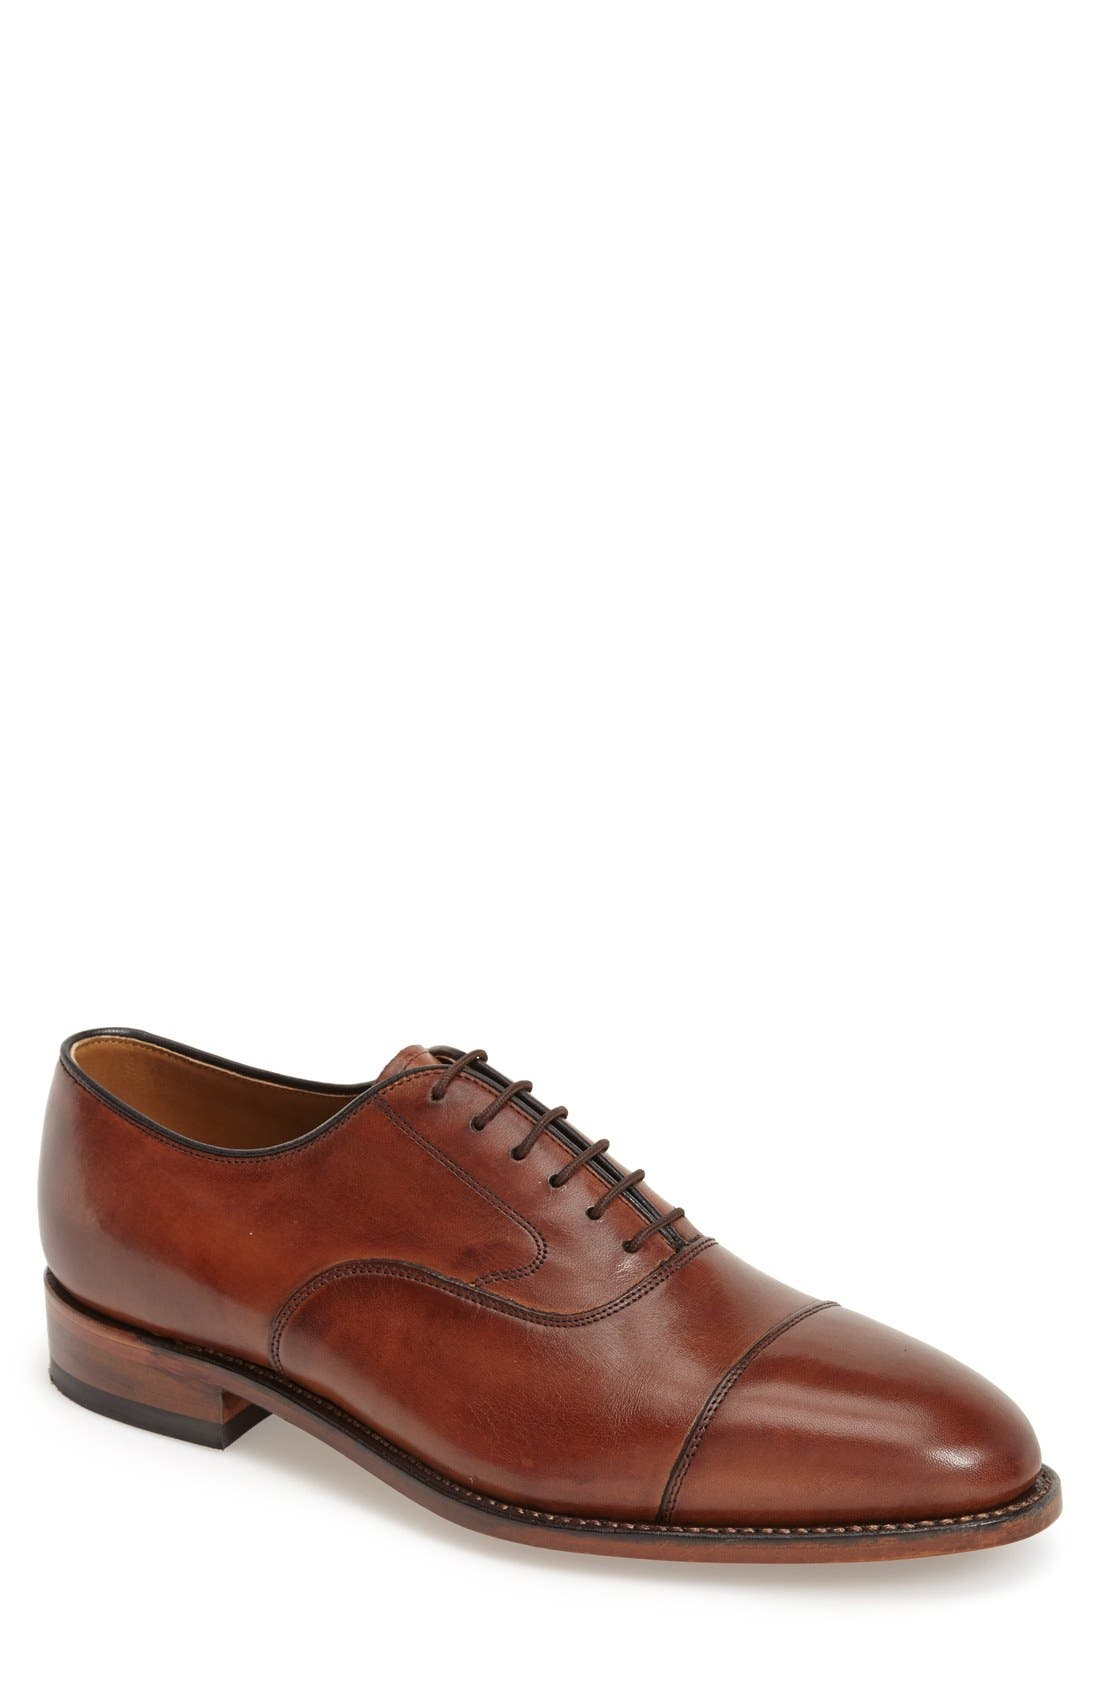 'Melton' Oxford,                             Main thumbnail 1, color,                             TAN